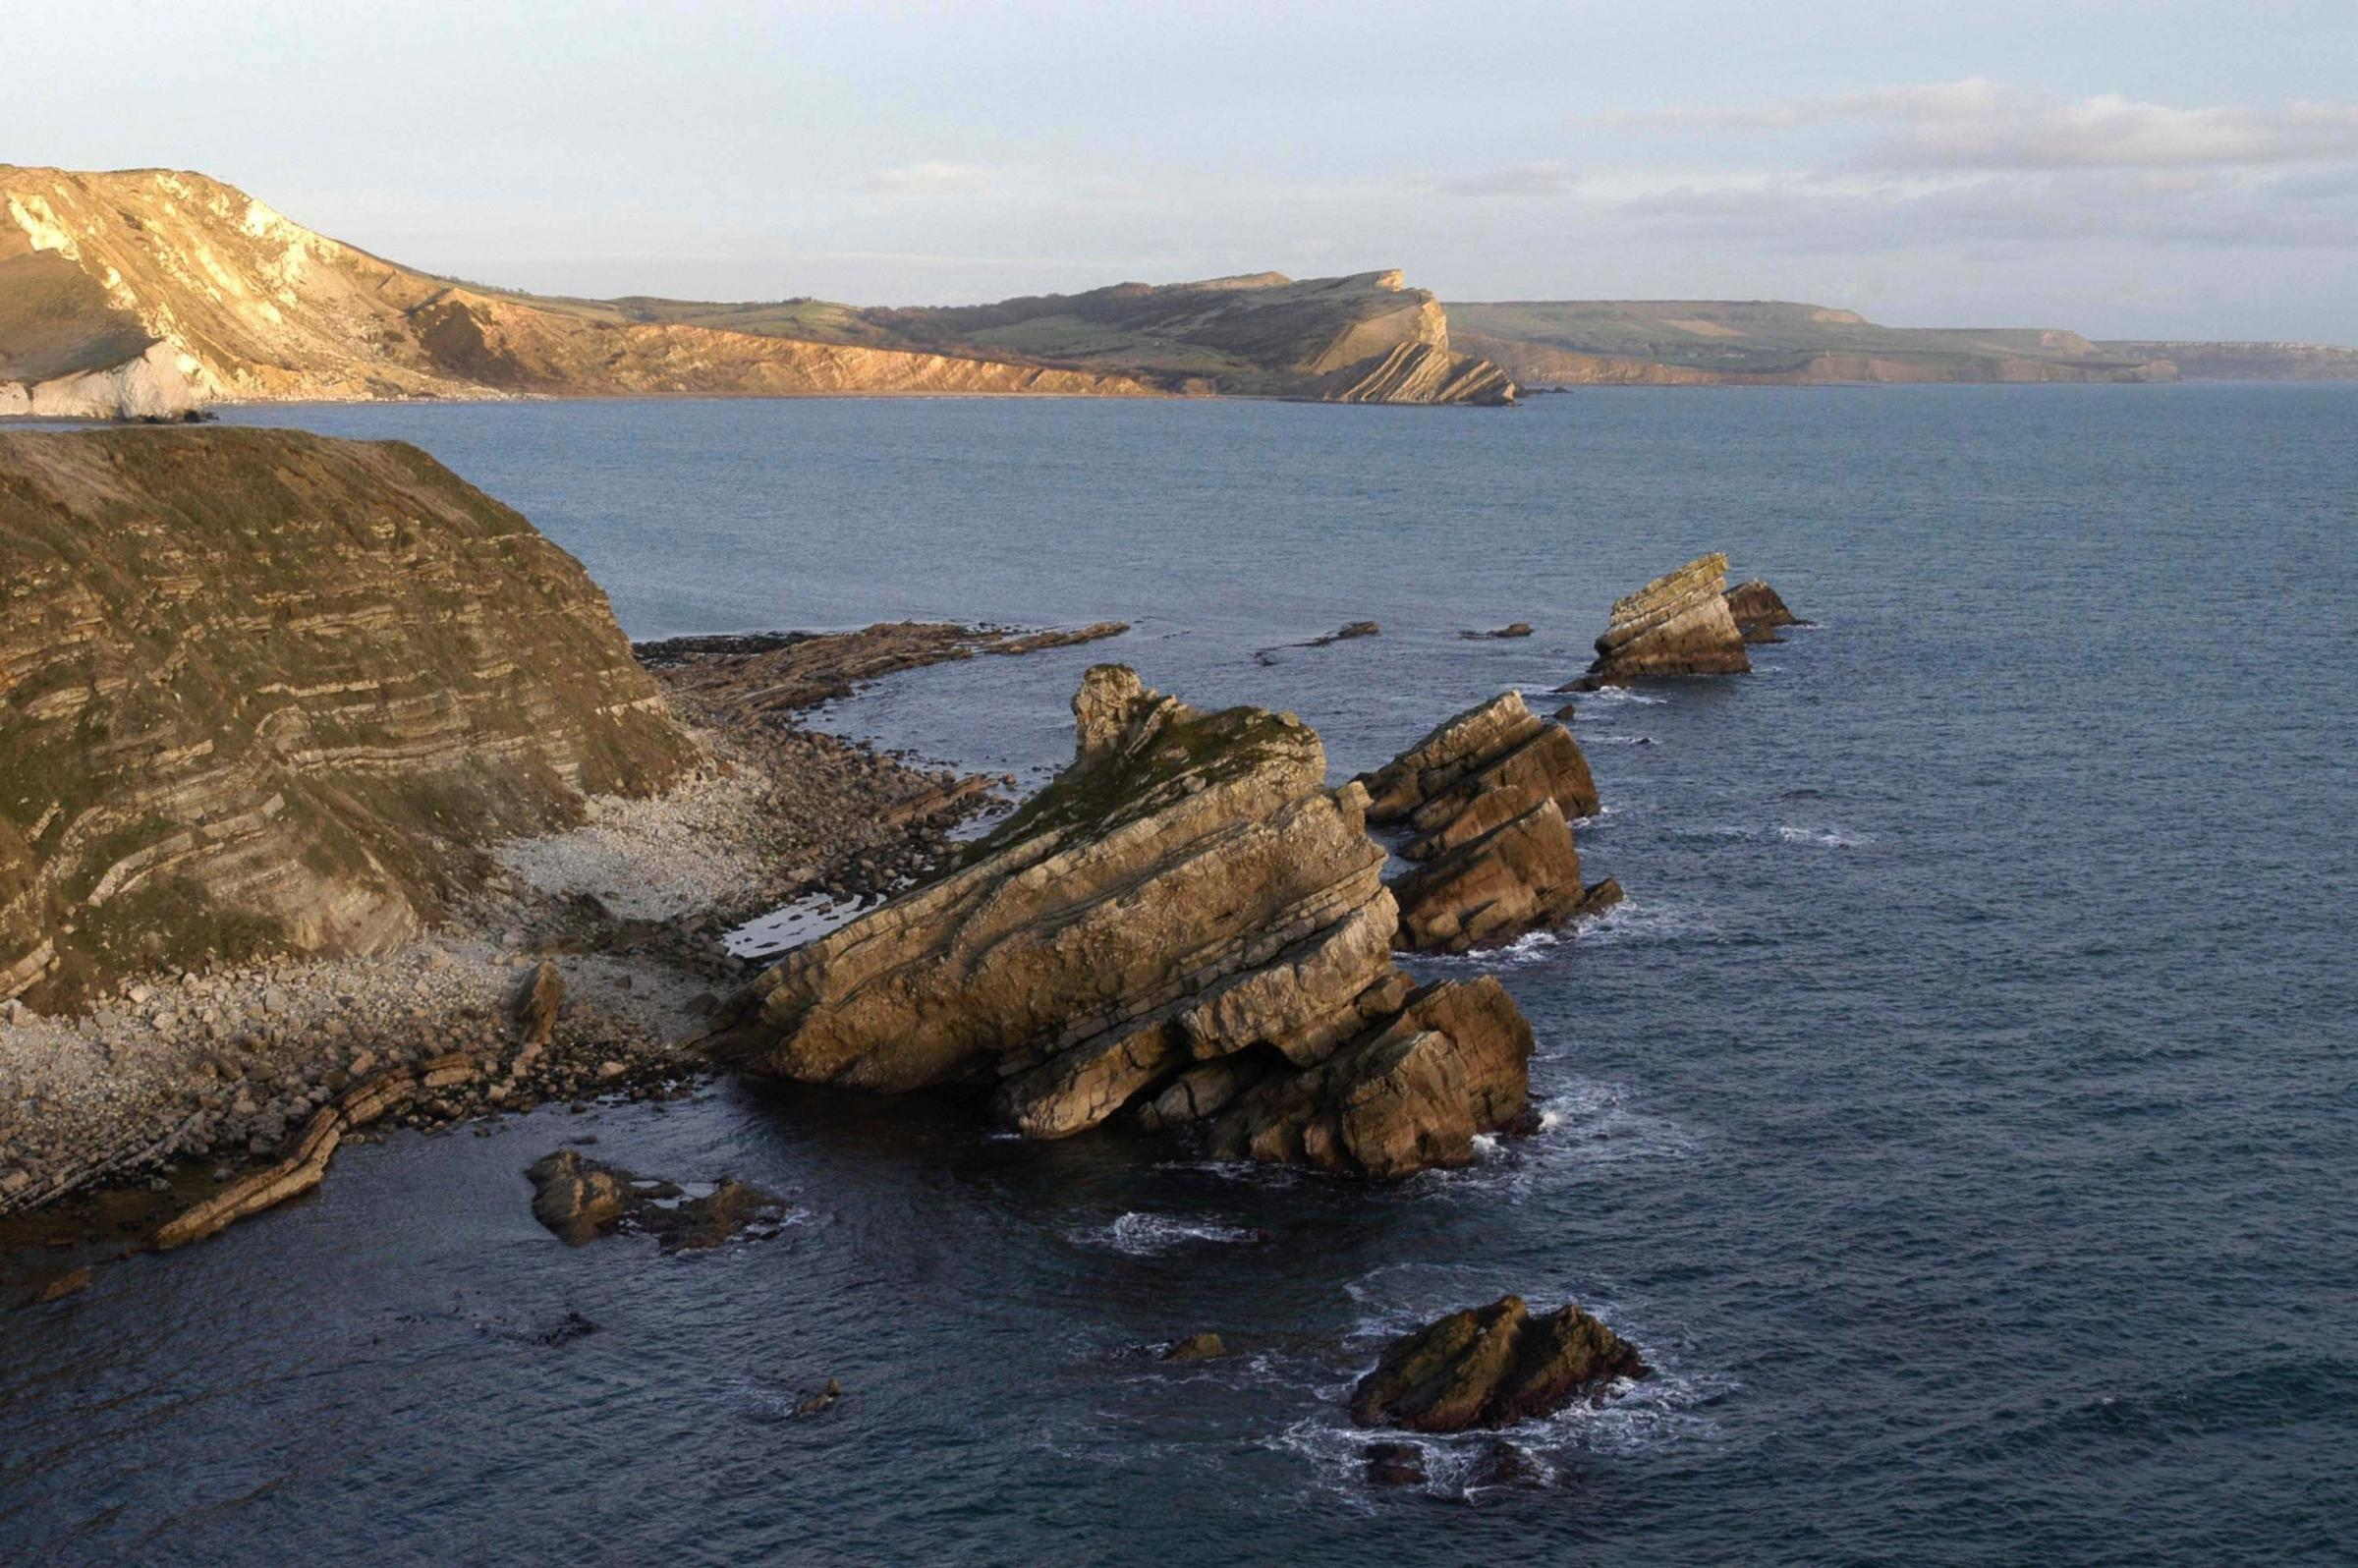 Have your say about the Jurassic Coast's future at these drop-in consultations